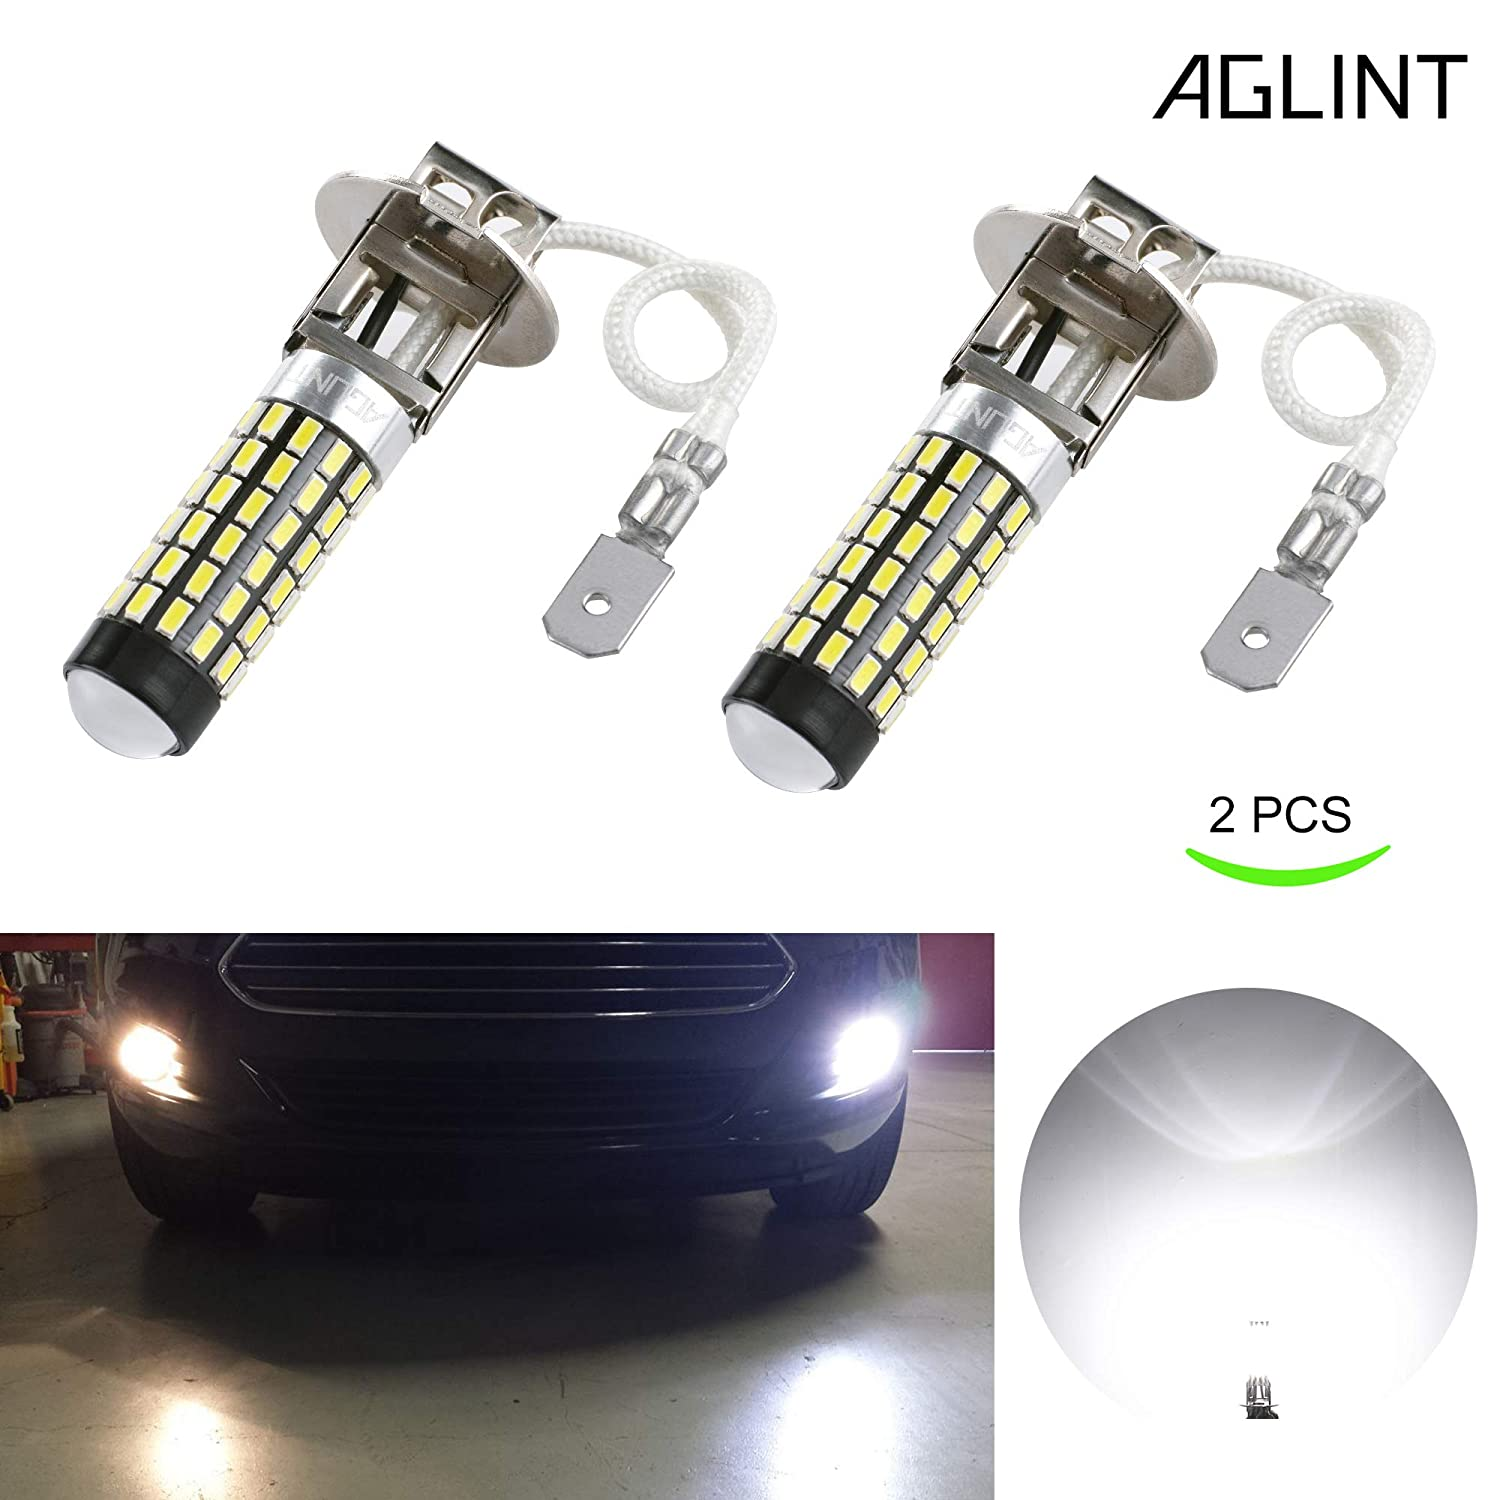 AGLINT H3 LED Coche Luz De Niebla DRL Bombilla 3014 78SMD Super Brillante LED Luces Antiniebla 12V 24V 6000K Blanco AGLINTLED